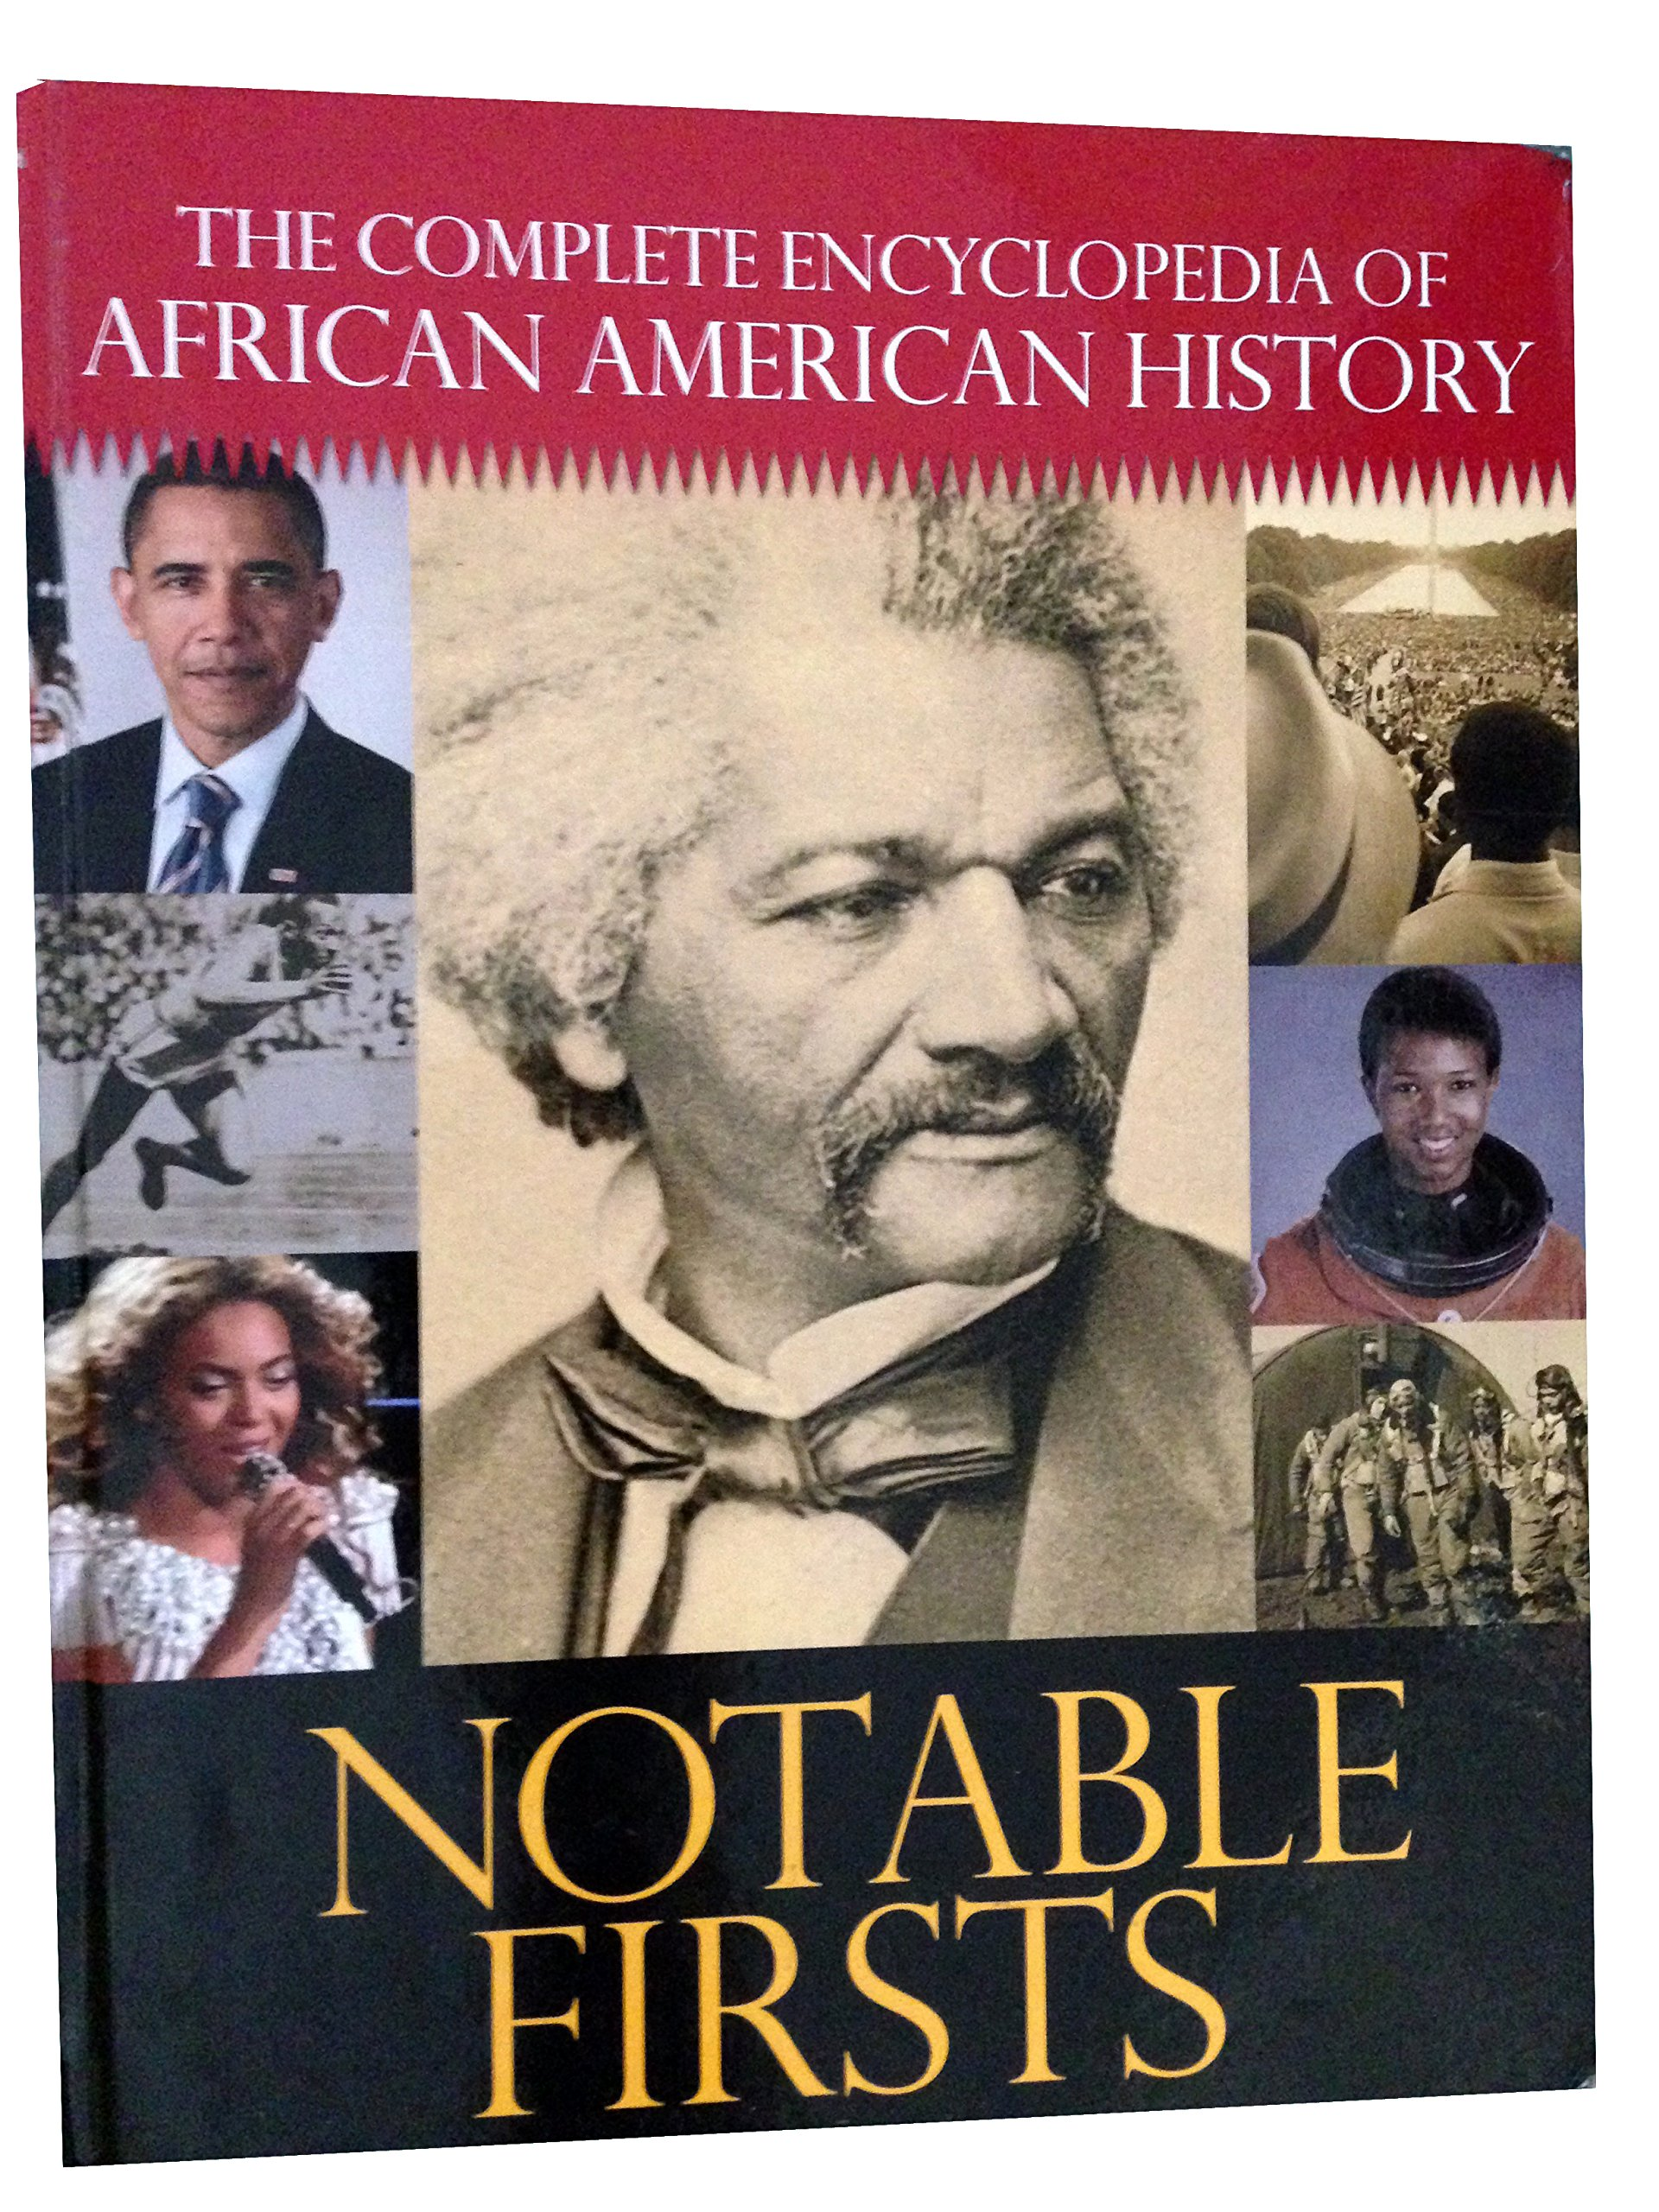 Download The Complete Encyclopedia of African American History: Notable Firsts pdf epub